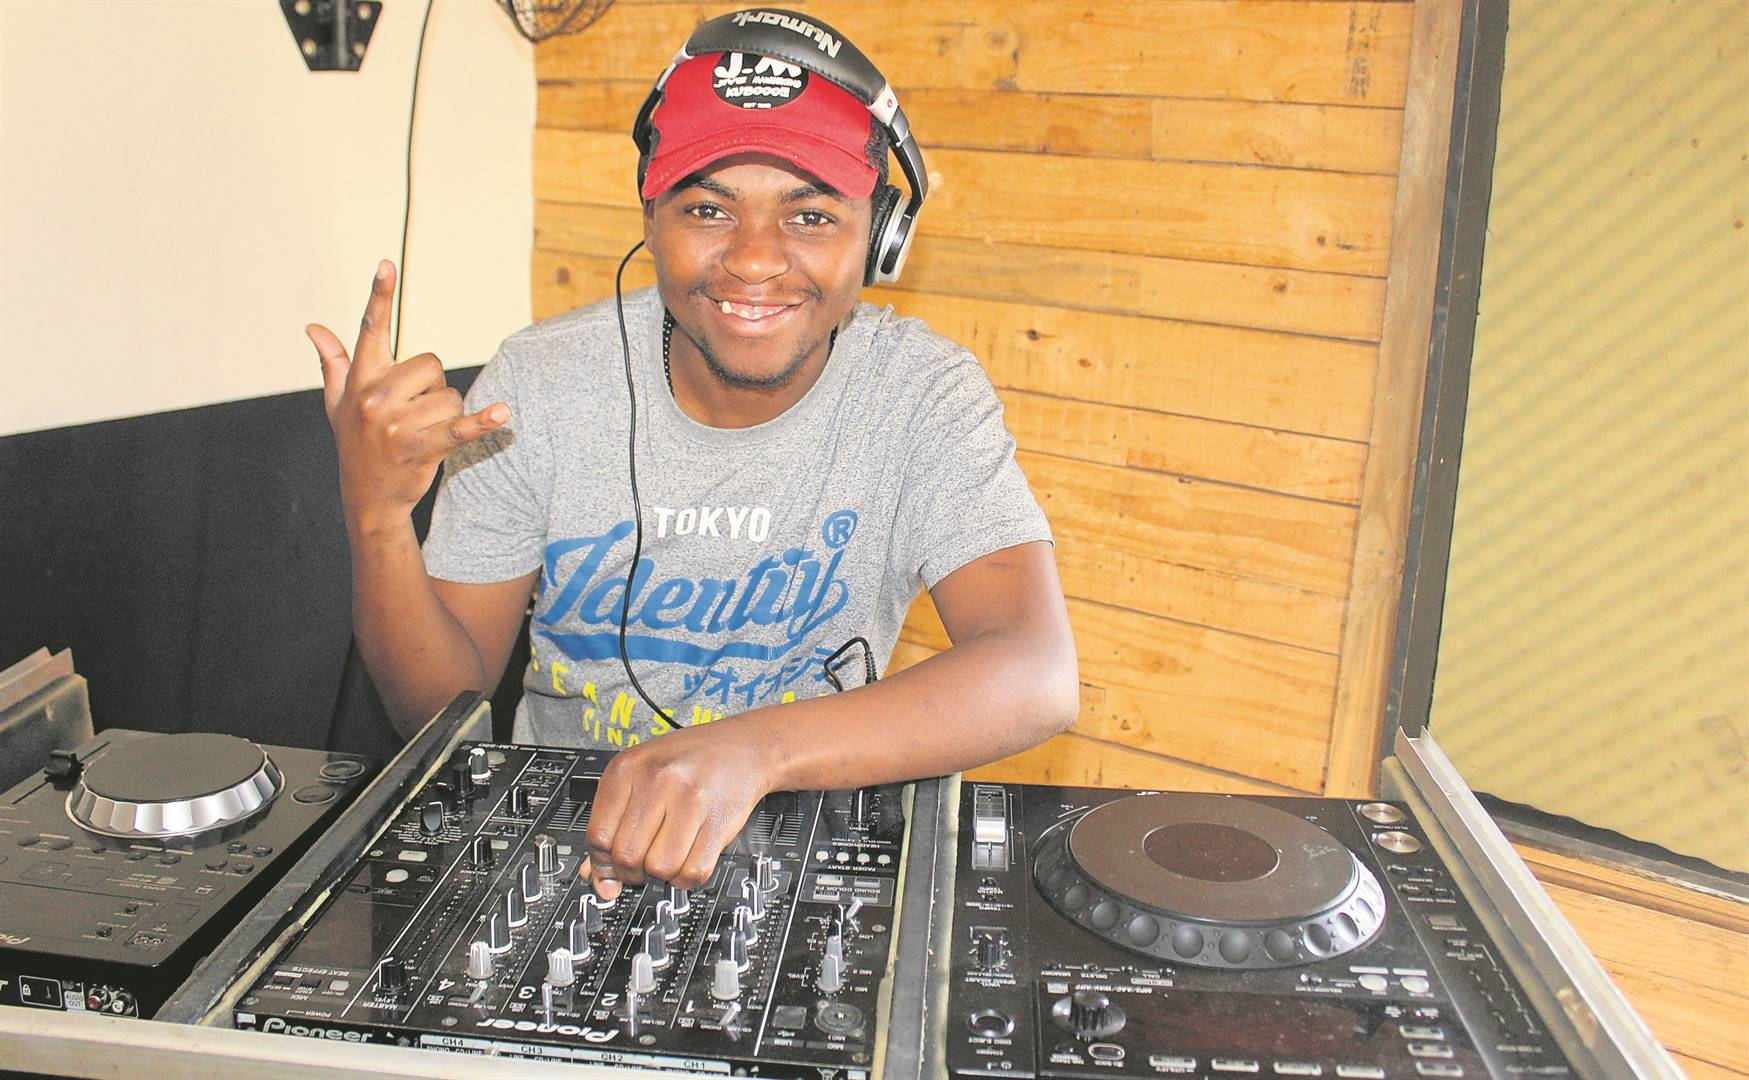 Makalang 'Jive Maweekend' Matlakengmqong from Nomzamo is making waves in the music industry with his song titled Umnqongo.PHOTO: VELANI LUDIDI